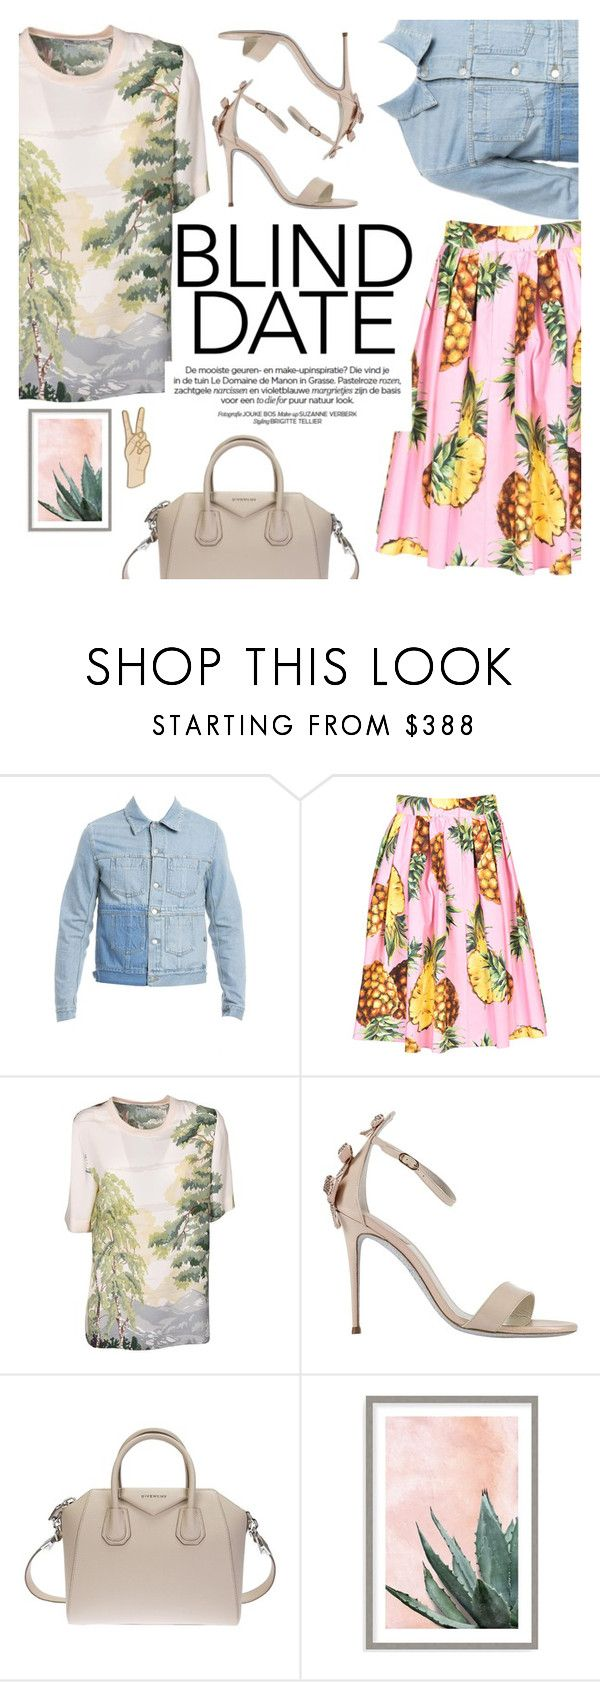 """""""Dress to Impress: Blind Date"""" by italist ❤ liked on Polyvore featuring Maison Margiela, Dolce&Gabbana, STELLA McCARTNEY, René Caovilla, Givenchy, Art Addiction and Lucky Brand"""